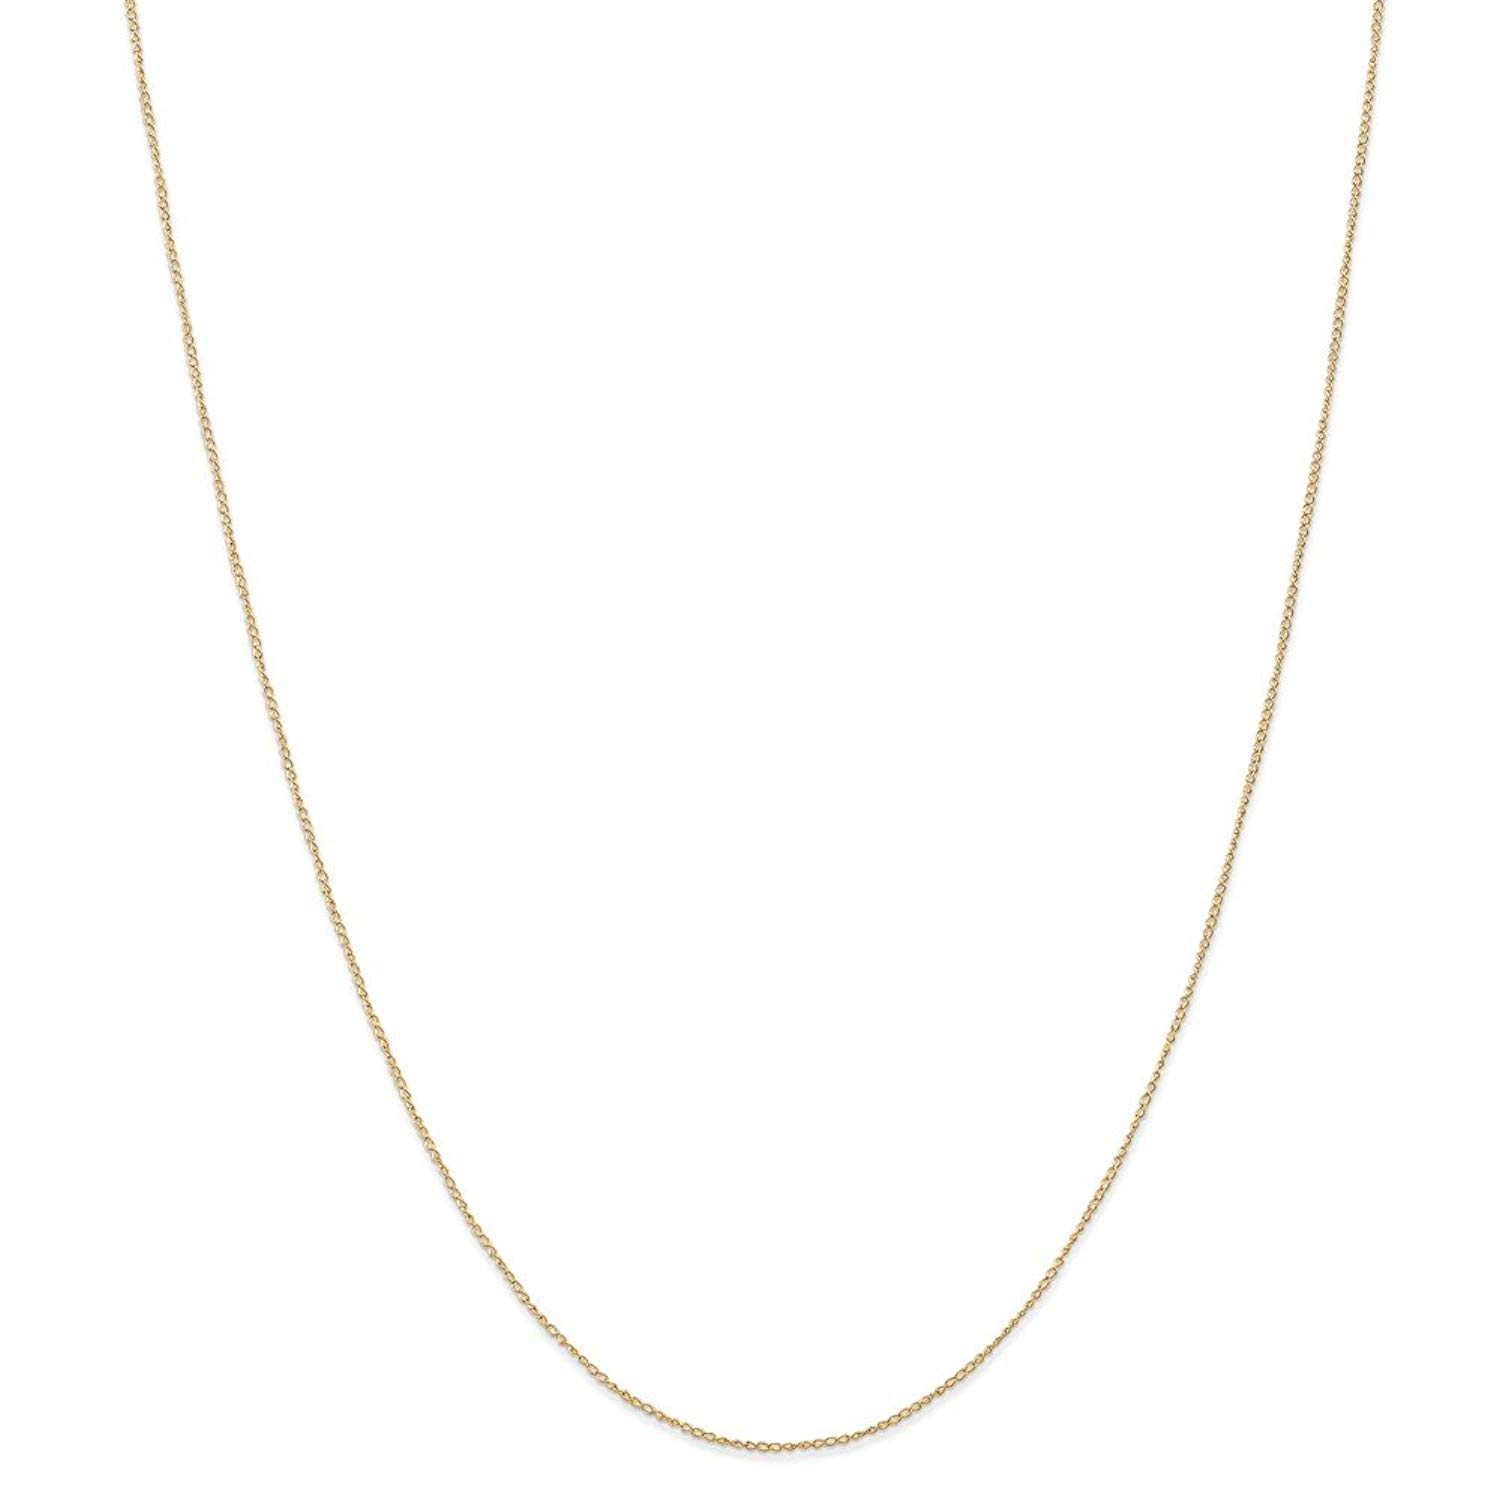 Solid 14k Yellow Gold .5 mm Thin Carded Cuban Curb Chain Necklace